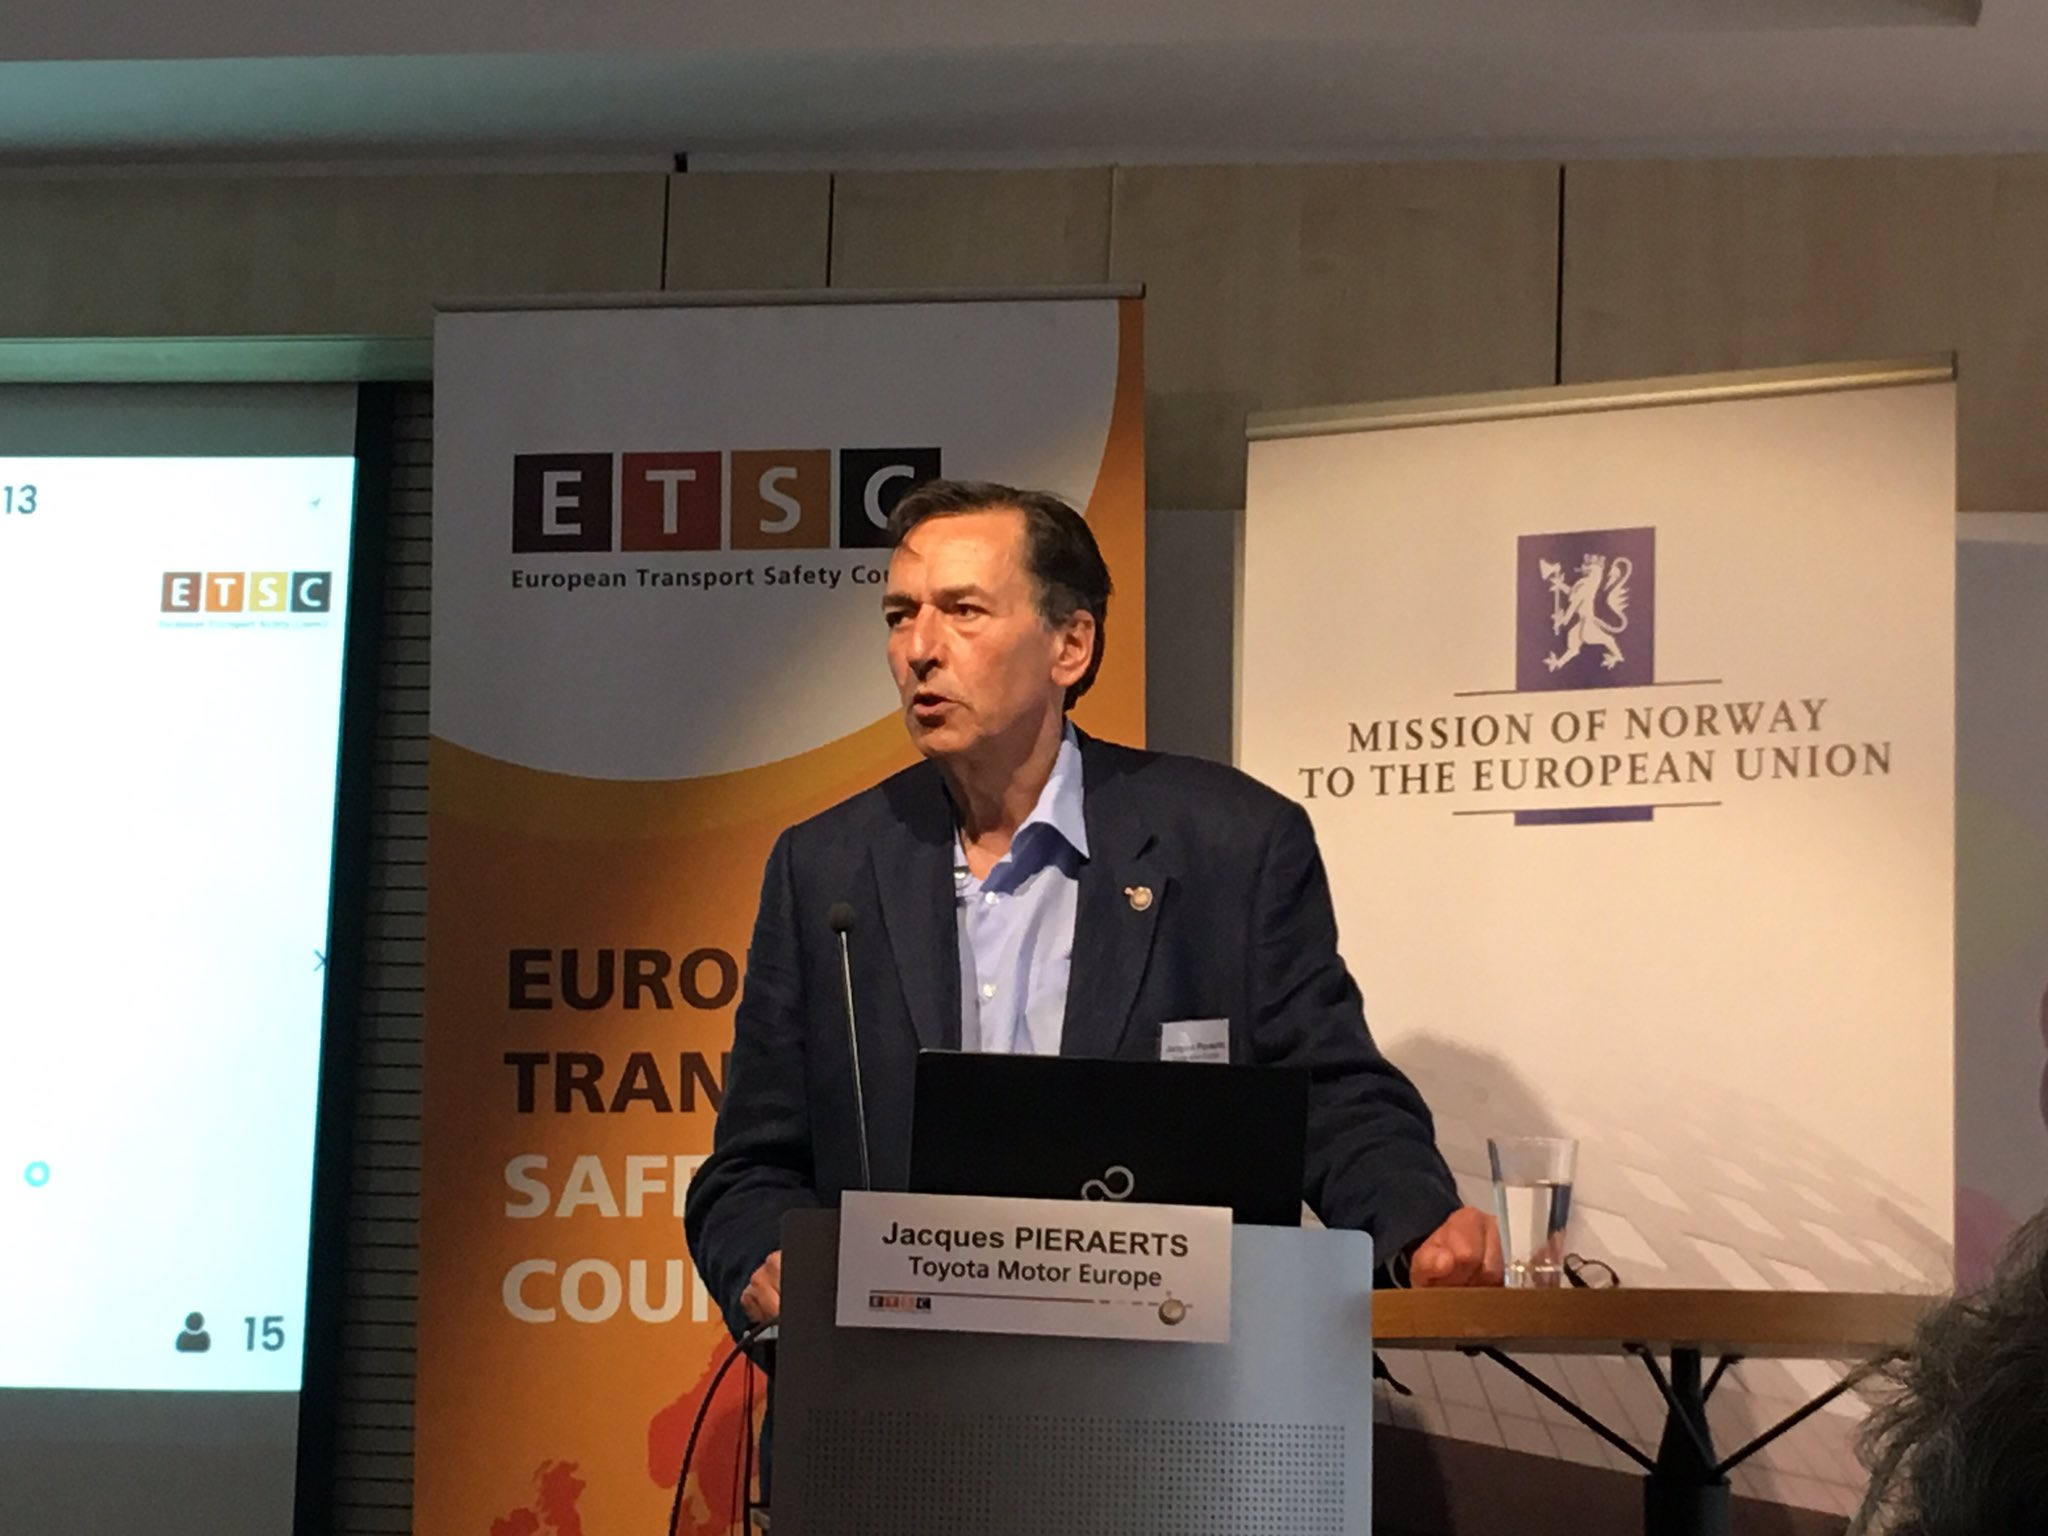 Safety cannot only be for the rich - Jacques Pieraerts Toyota Motor Europe @ETSC_EU PIN Conference #nozerostarcars #roadsafety https://t.co/01UN53SRPU